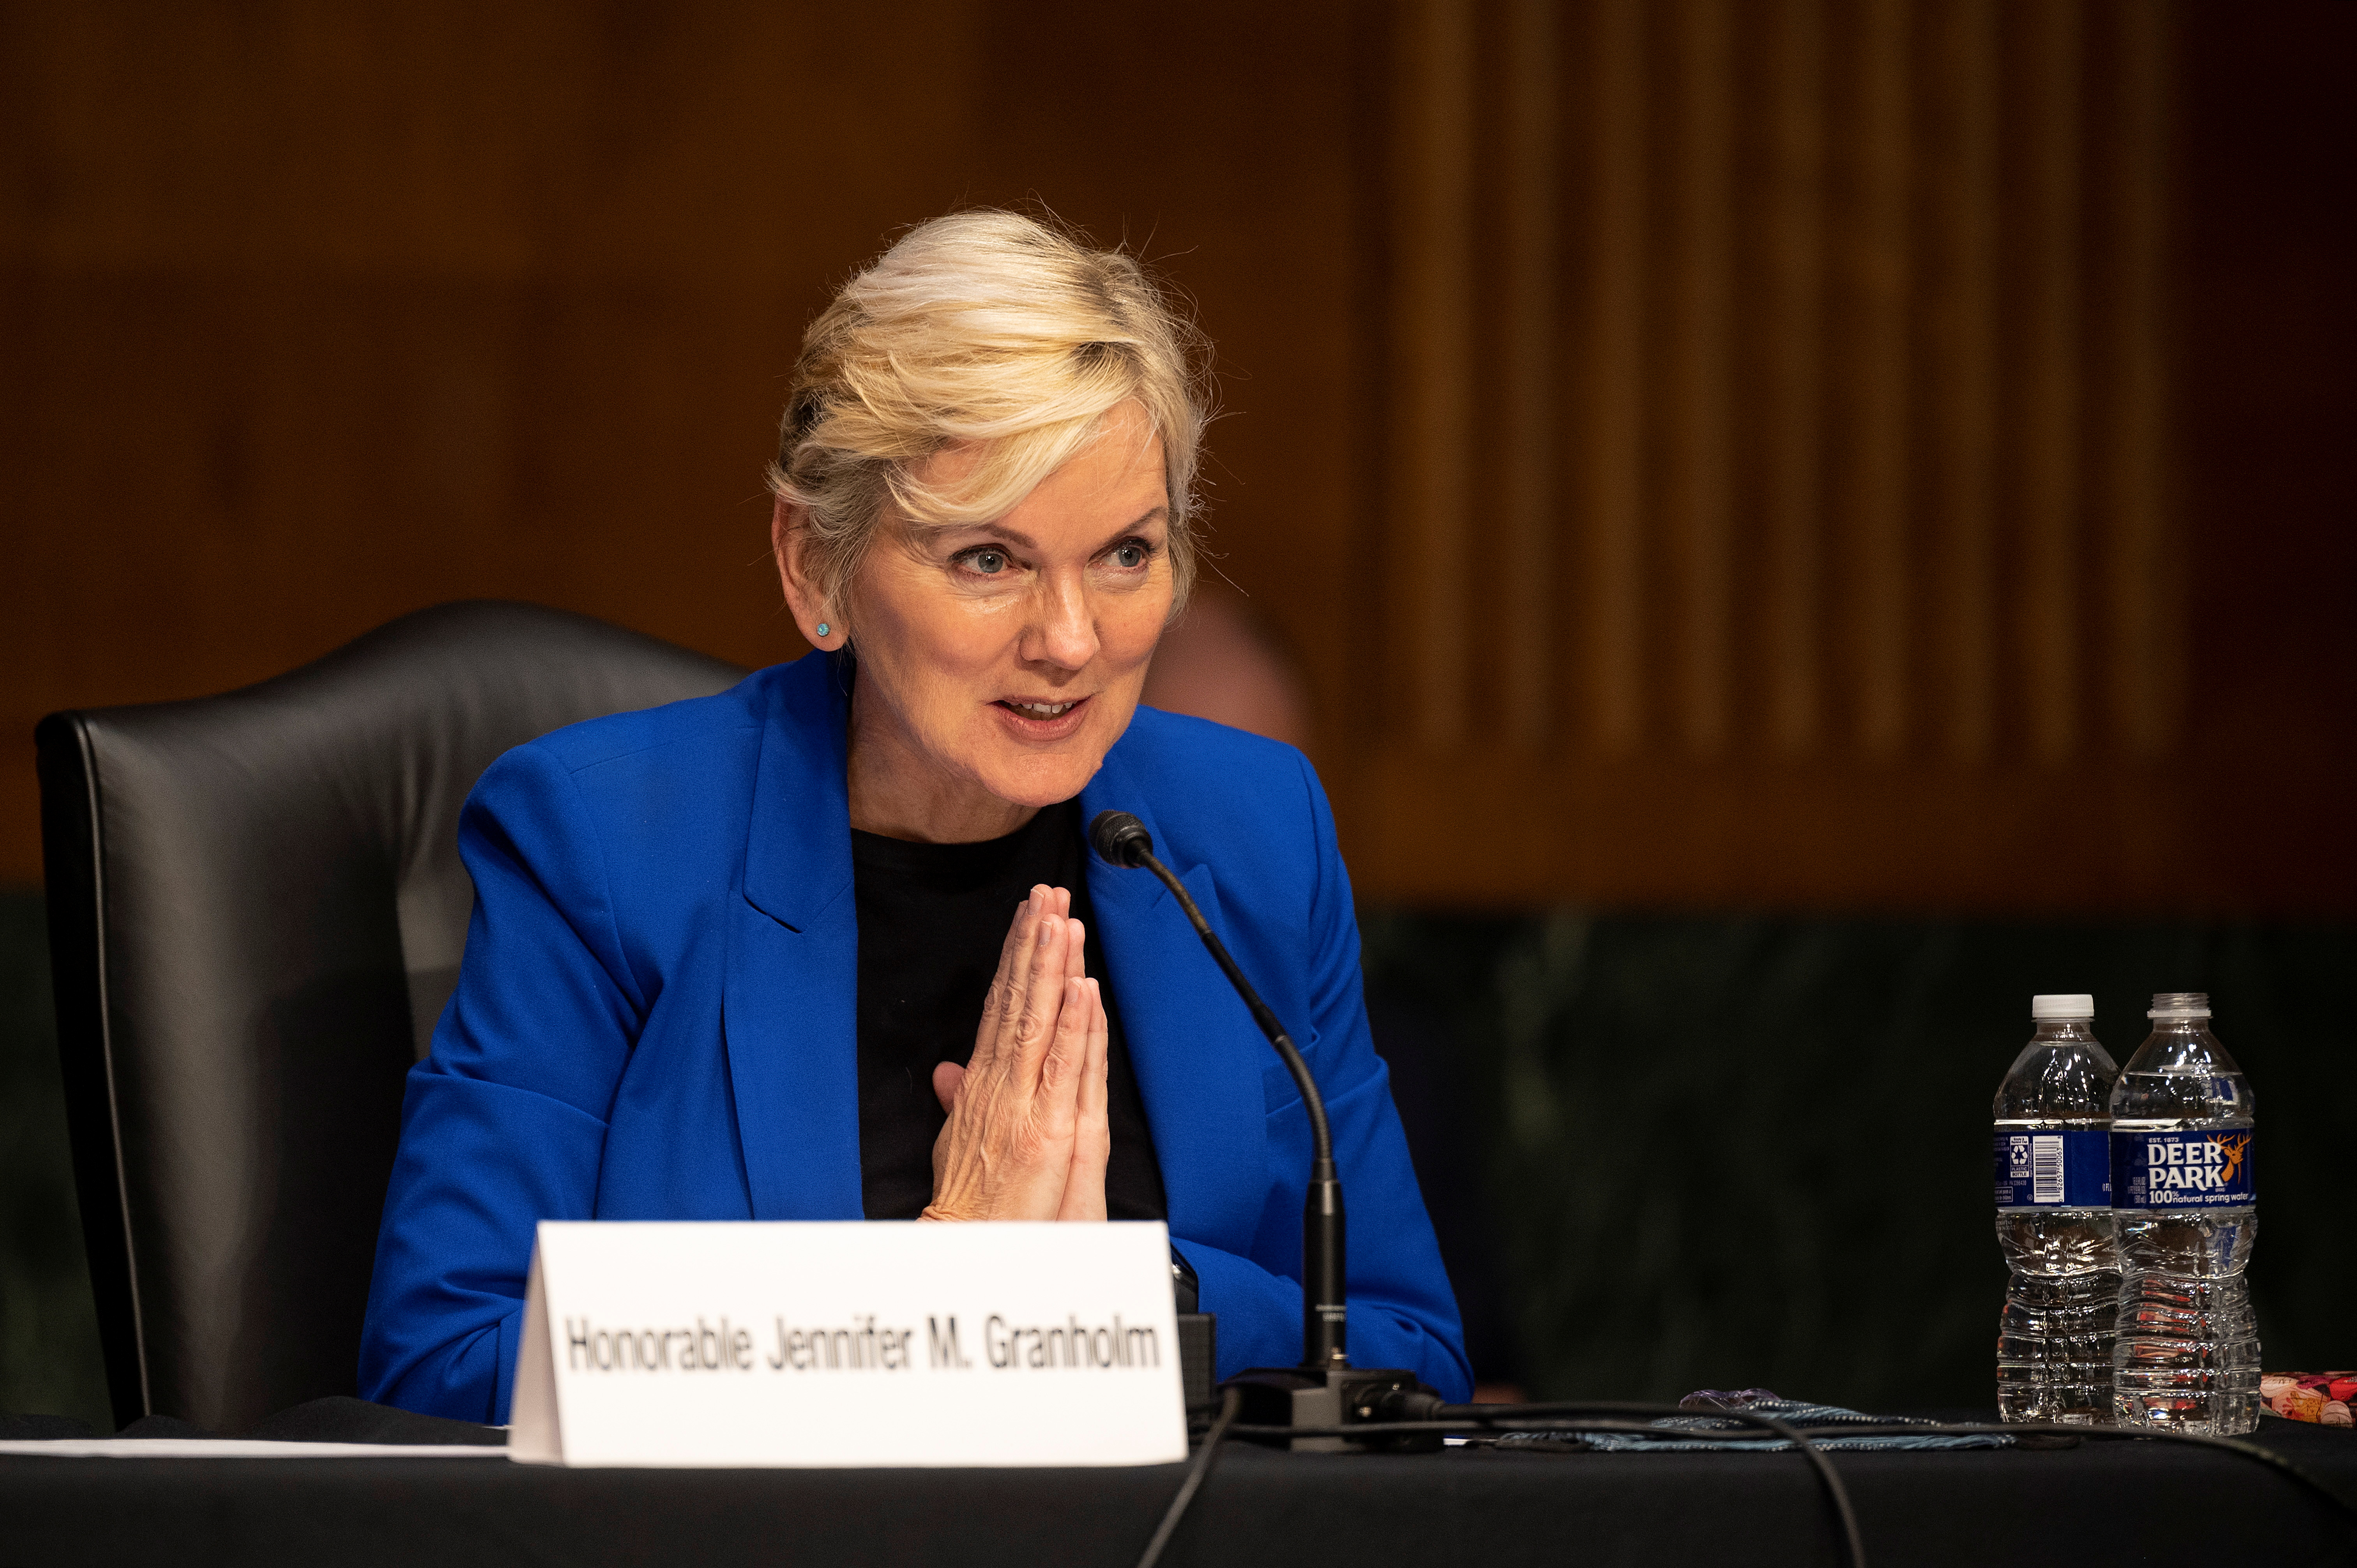 Former Michigan Governor Jennifer Granholm thanks to the committee after testifying before the Senate Energy and Natural Resources Committee during a hearing to examine her nomination to be Secretary of Energy, on Capitol Hill in Washington, D.C., U.S., January 27, 2021. Jim Watson/Pool via REUTERS